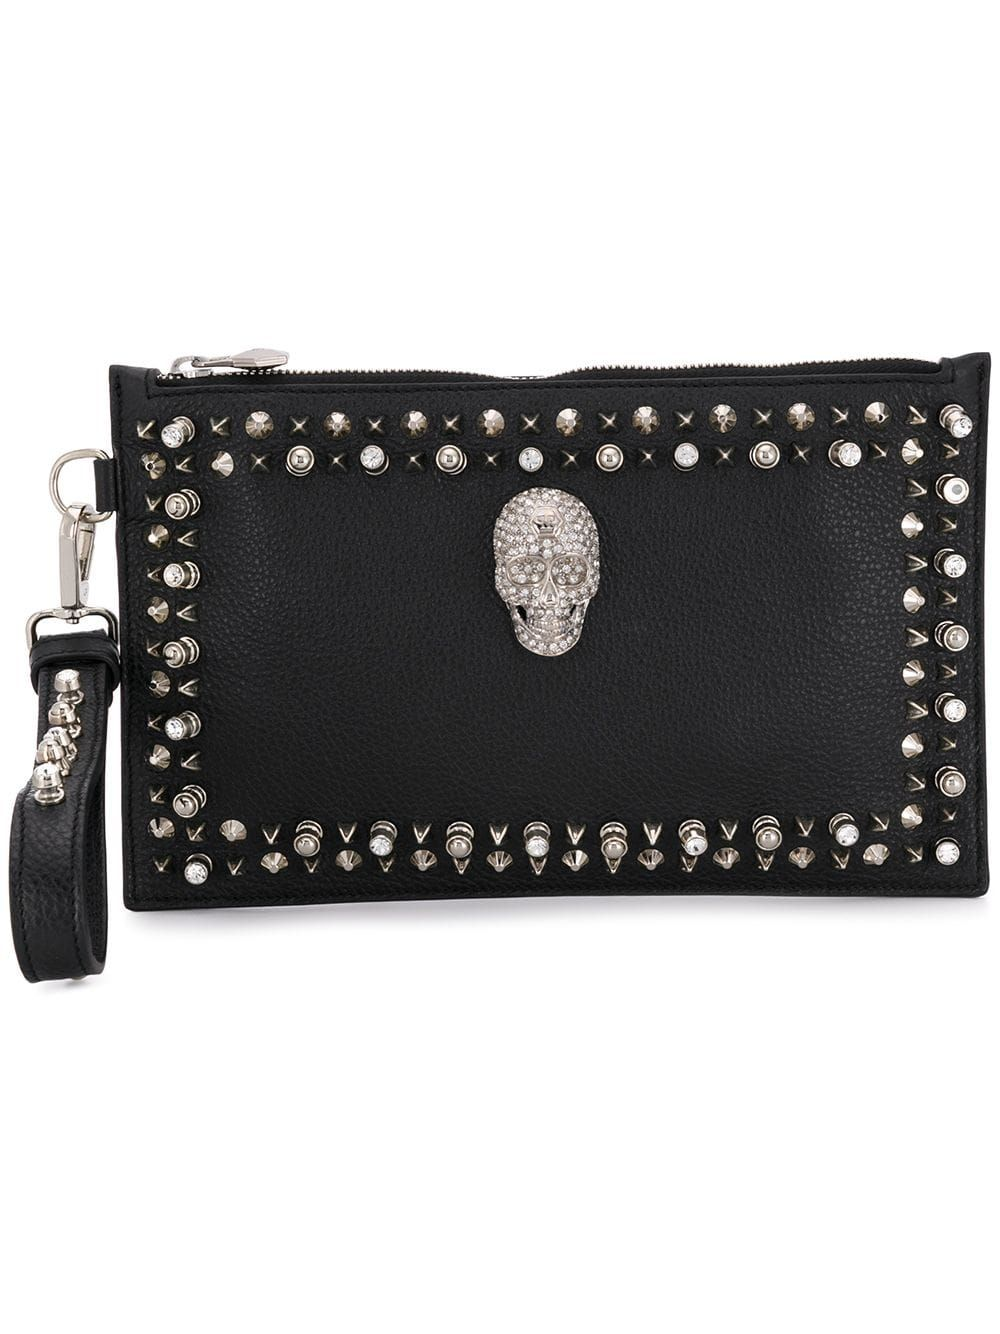 a487857690 Philipp Plein Studs shoulder bag - Black in 2019 | Products | Bags ...